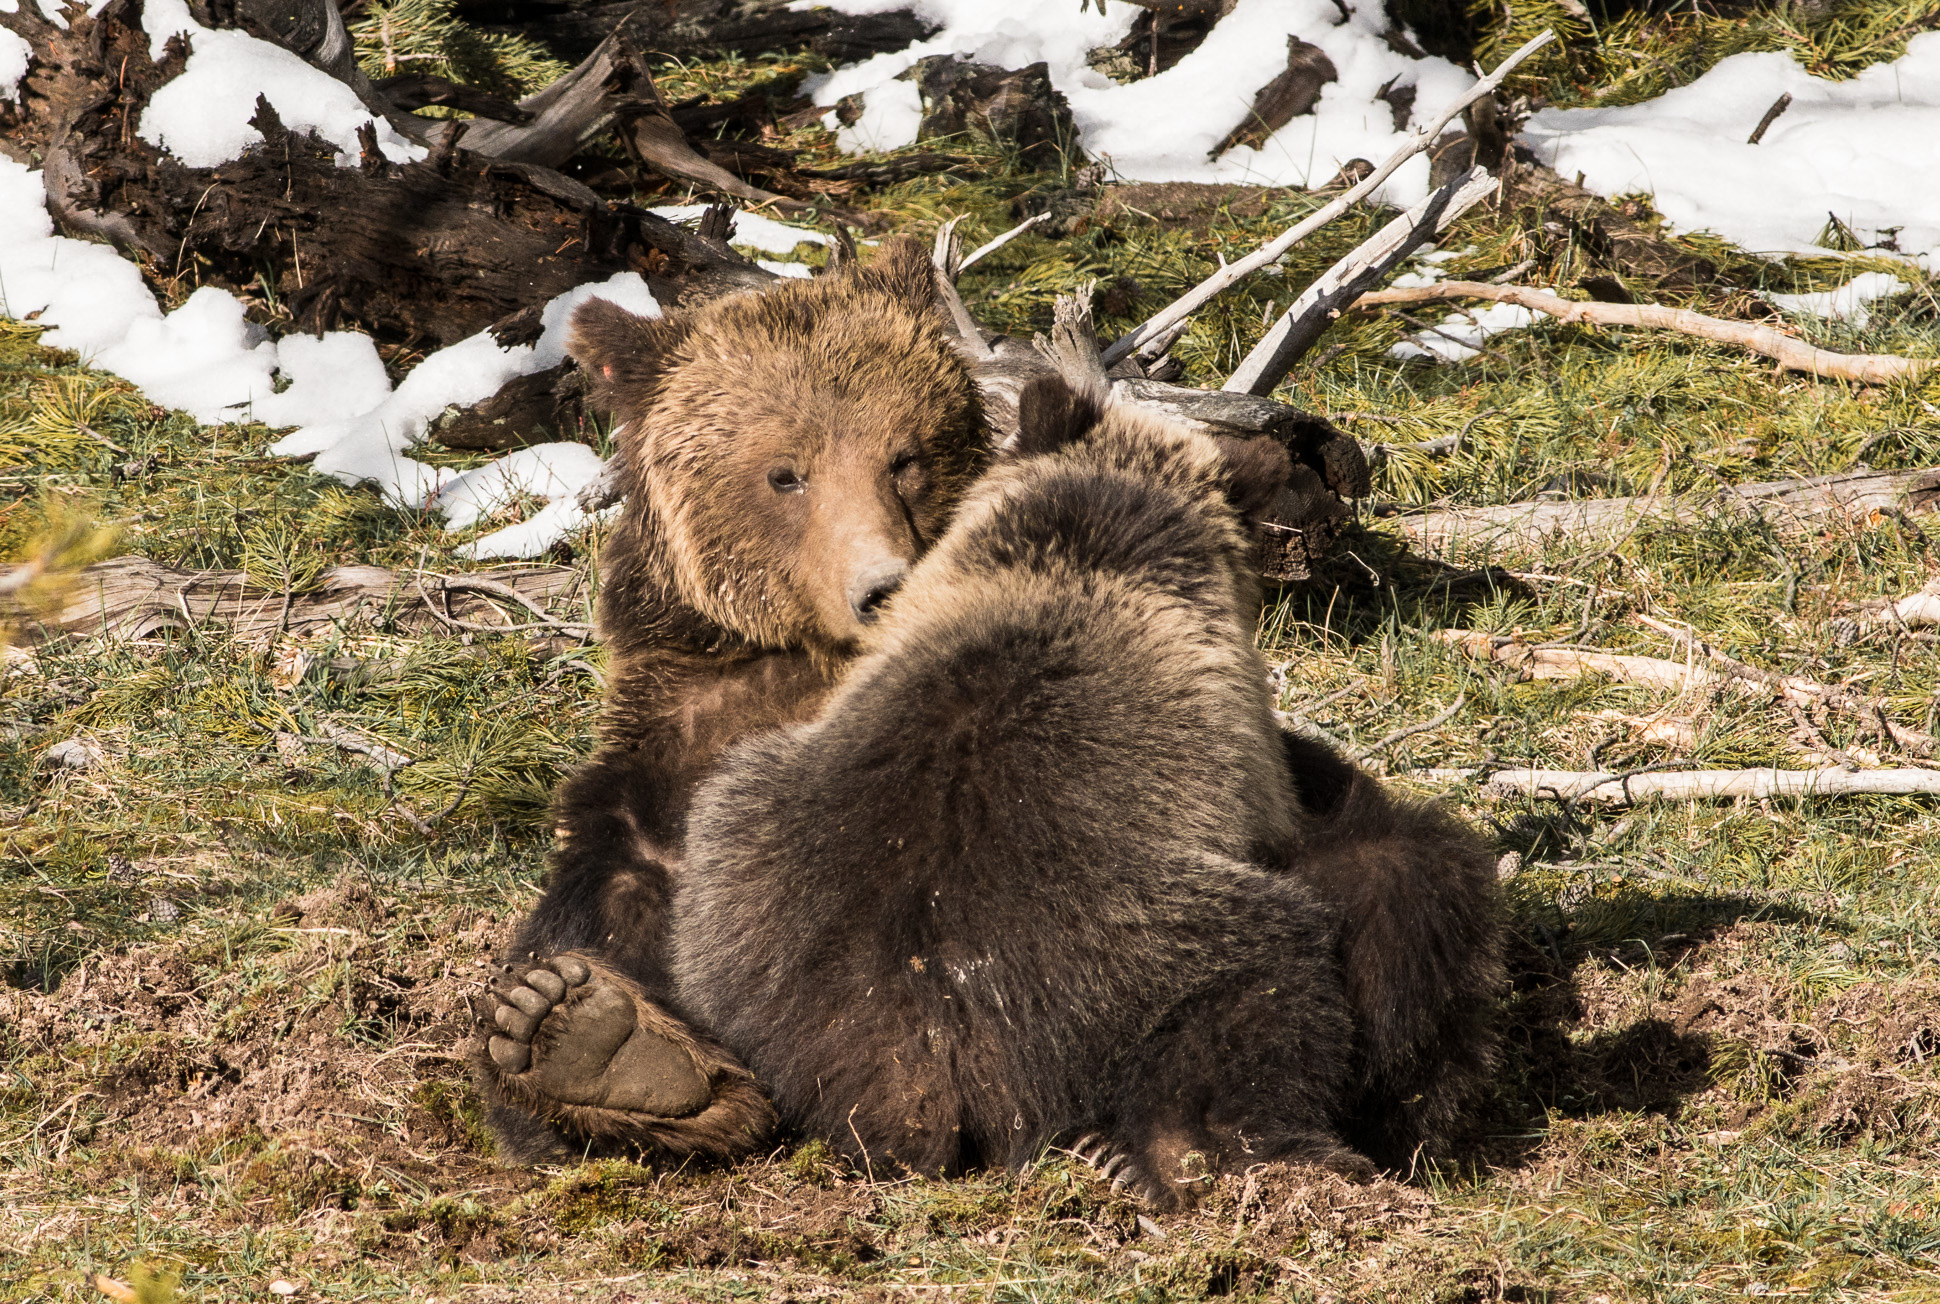 Grizzly Bear and cub Valley Girl near Roaring Mountain Yellowstone National Park WY-06636